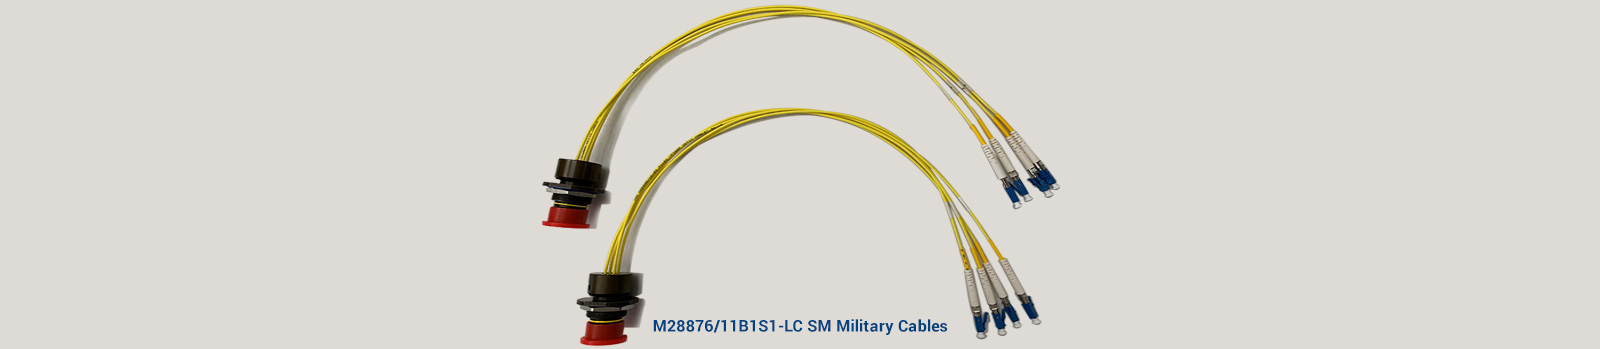 M28876 11B1S1 LC SM Military Cables